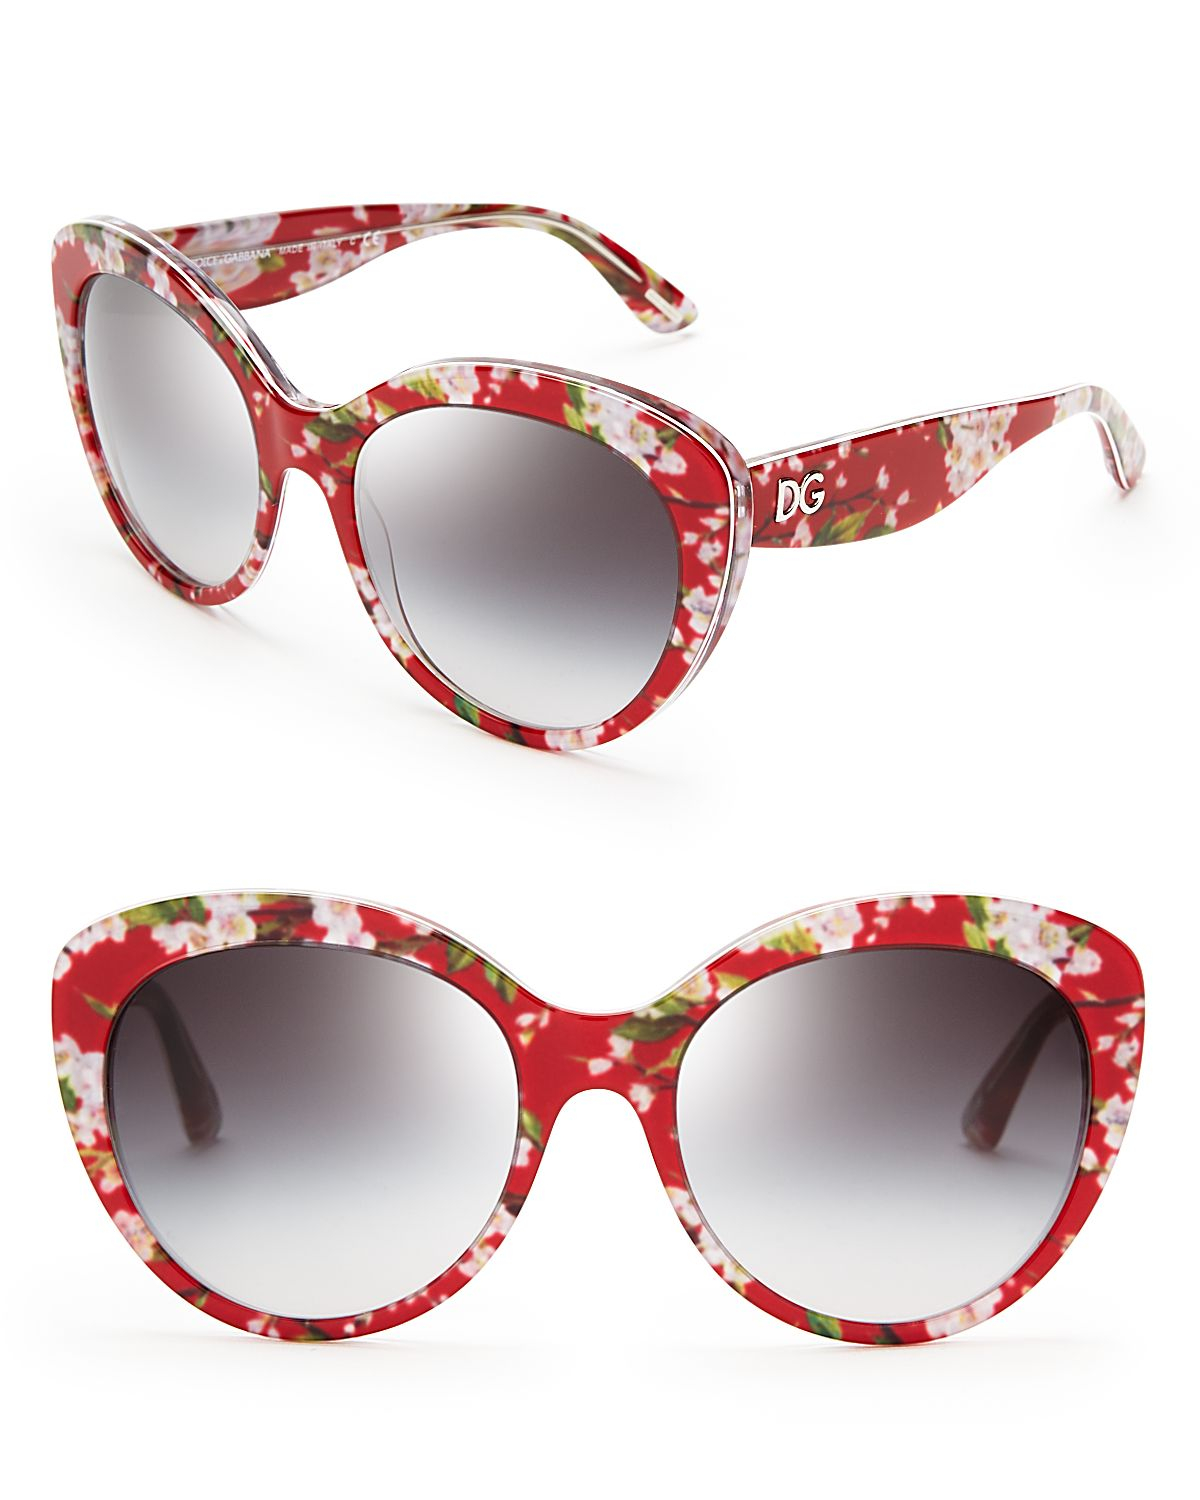 dd291bef580 Lyst - Dolce   Gabbana Dolce Gabbana Floral Cat Eye Sunglasses in Red